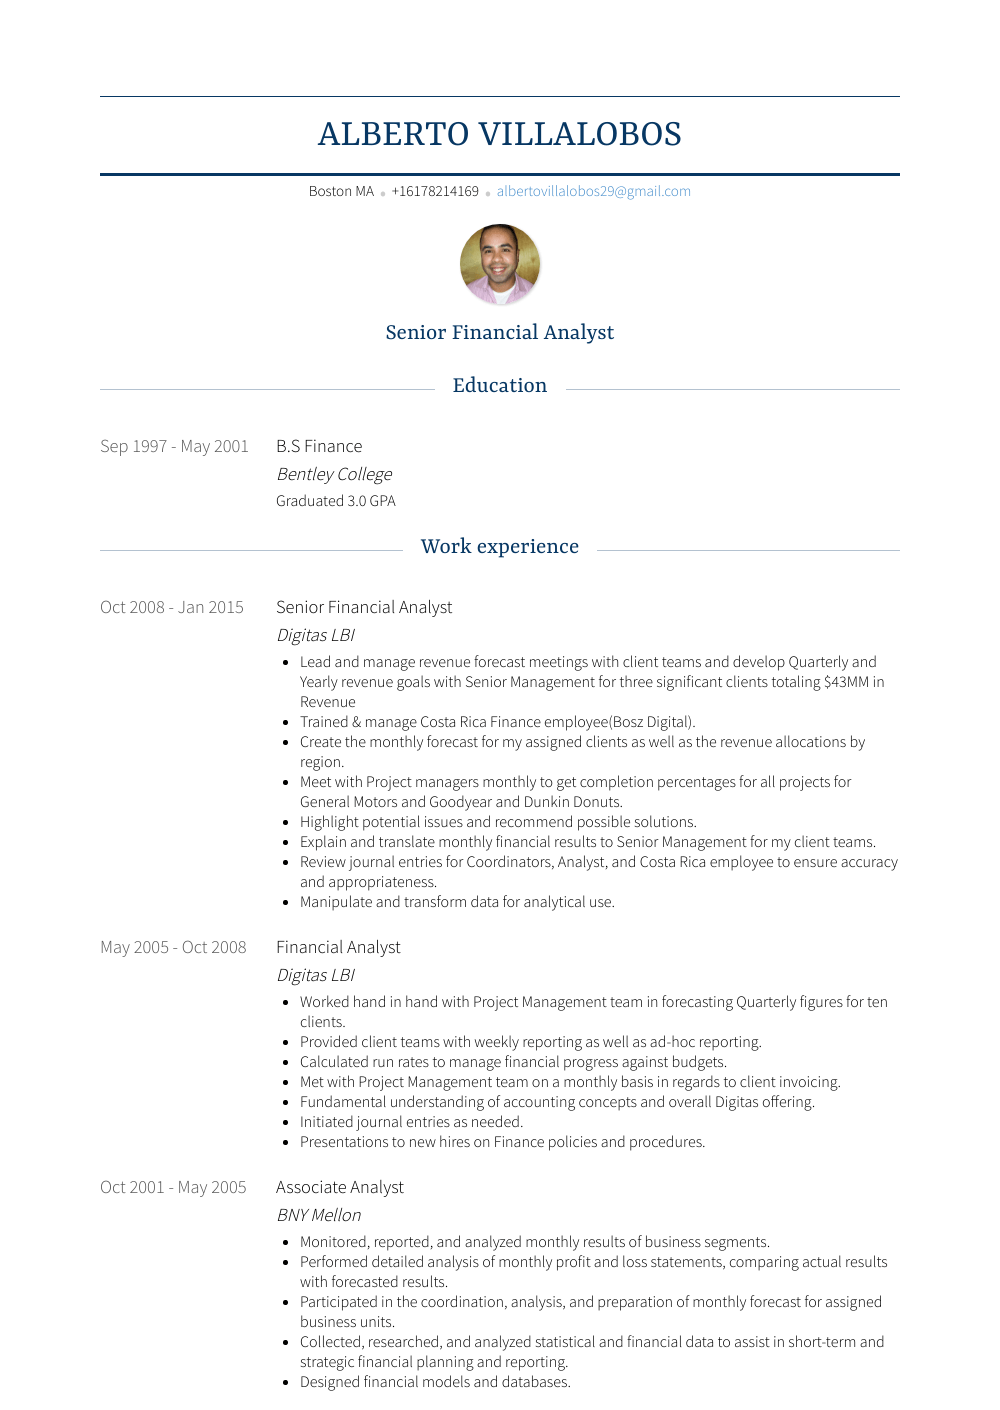 Senior Financial Analyst Resume Samples Templates Visualcv